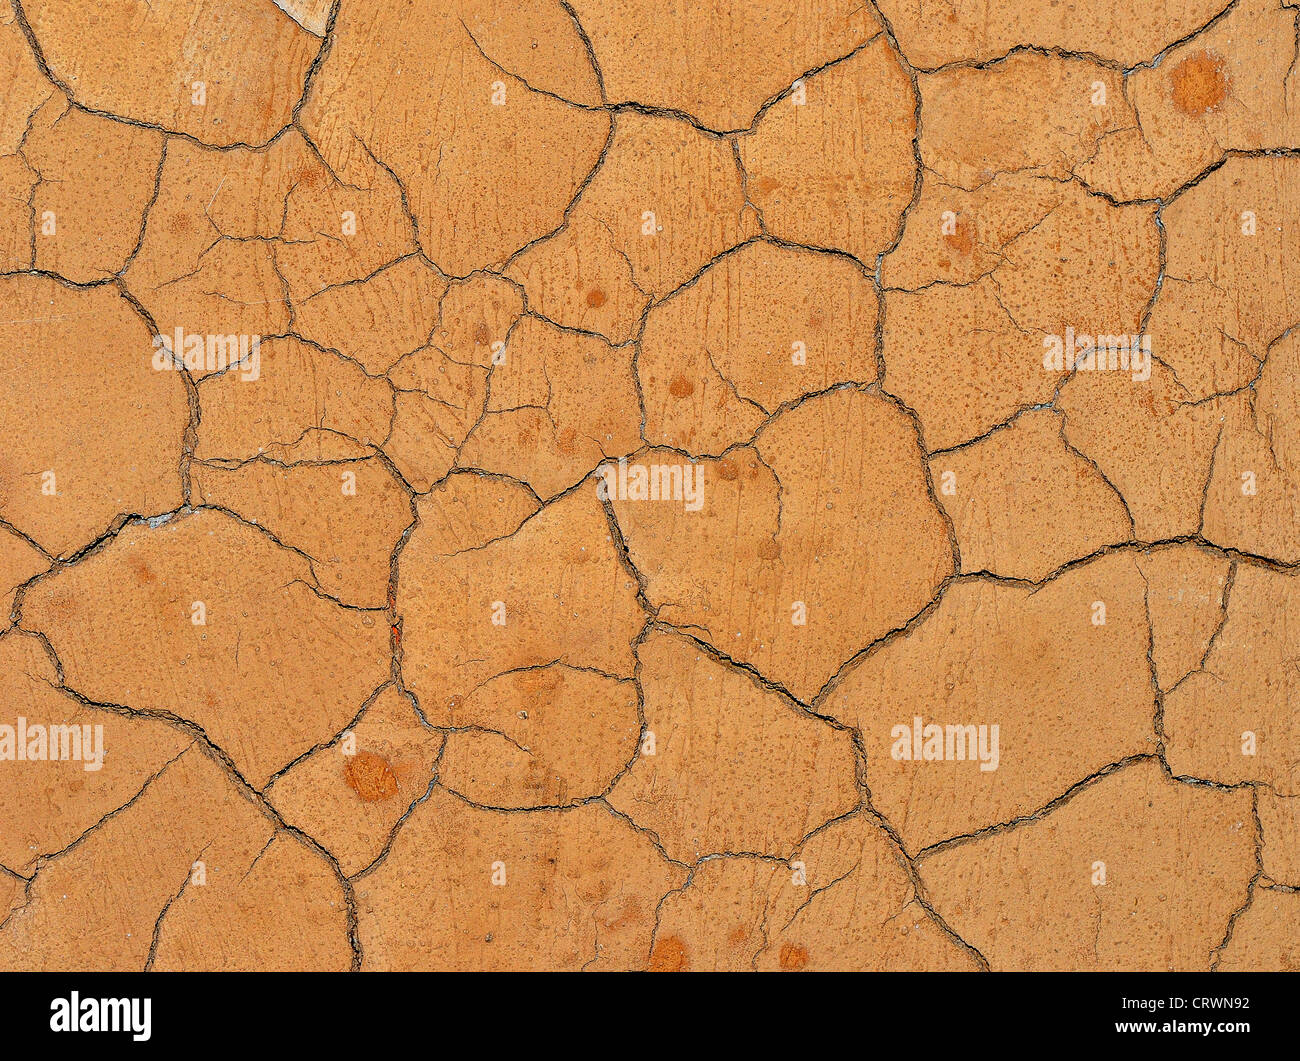 Cracked clay surface - Stock Image